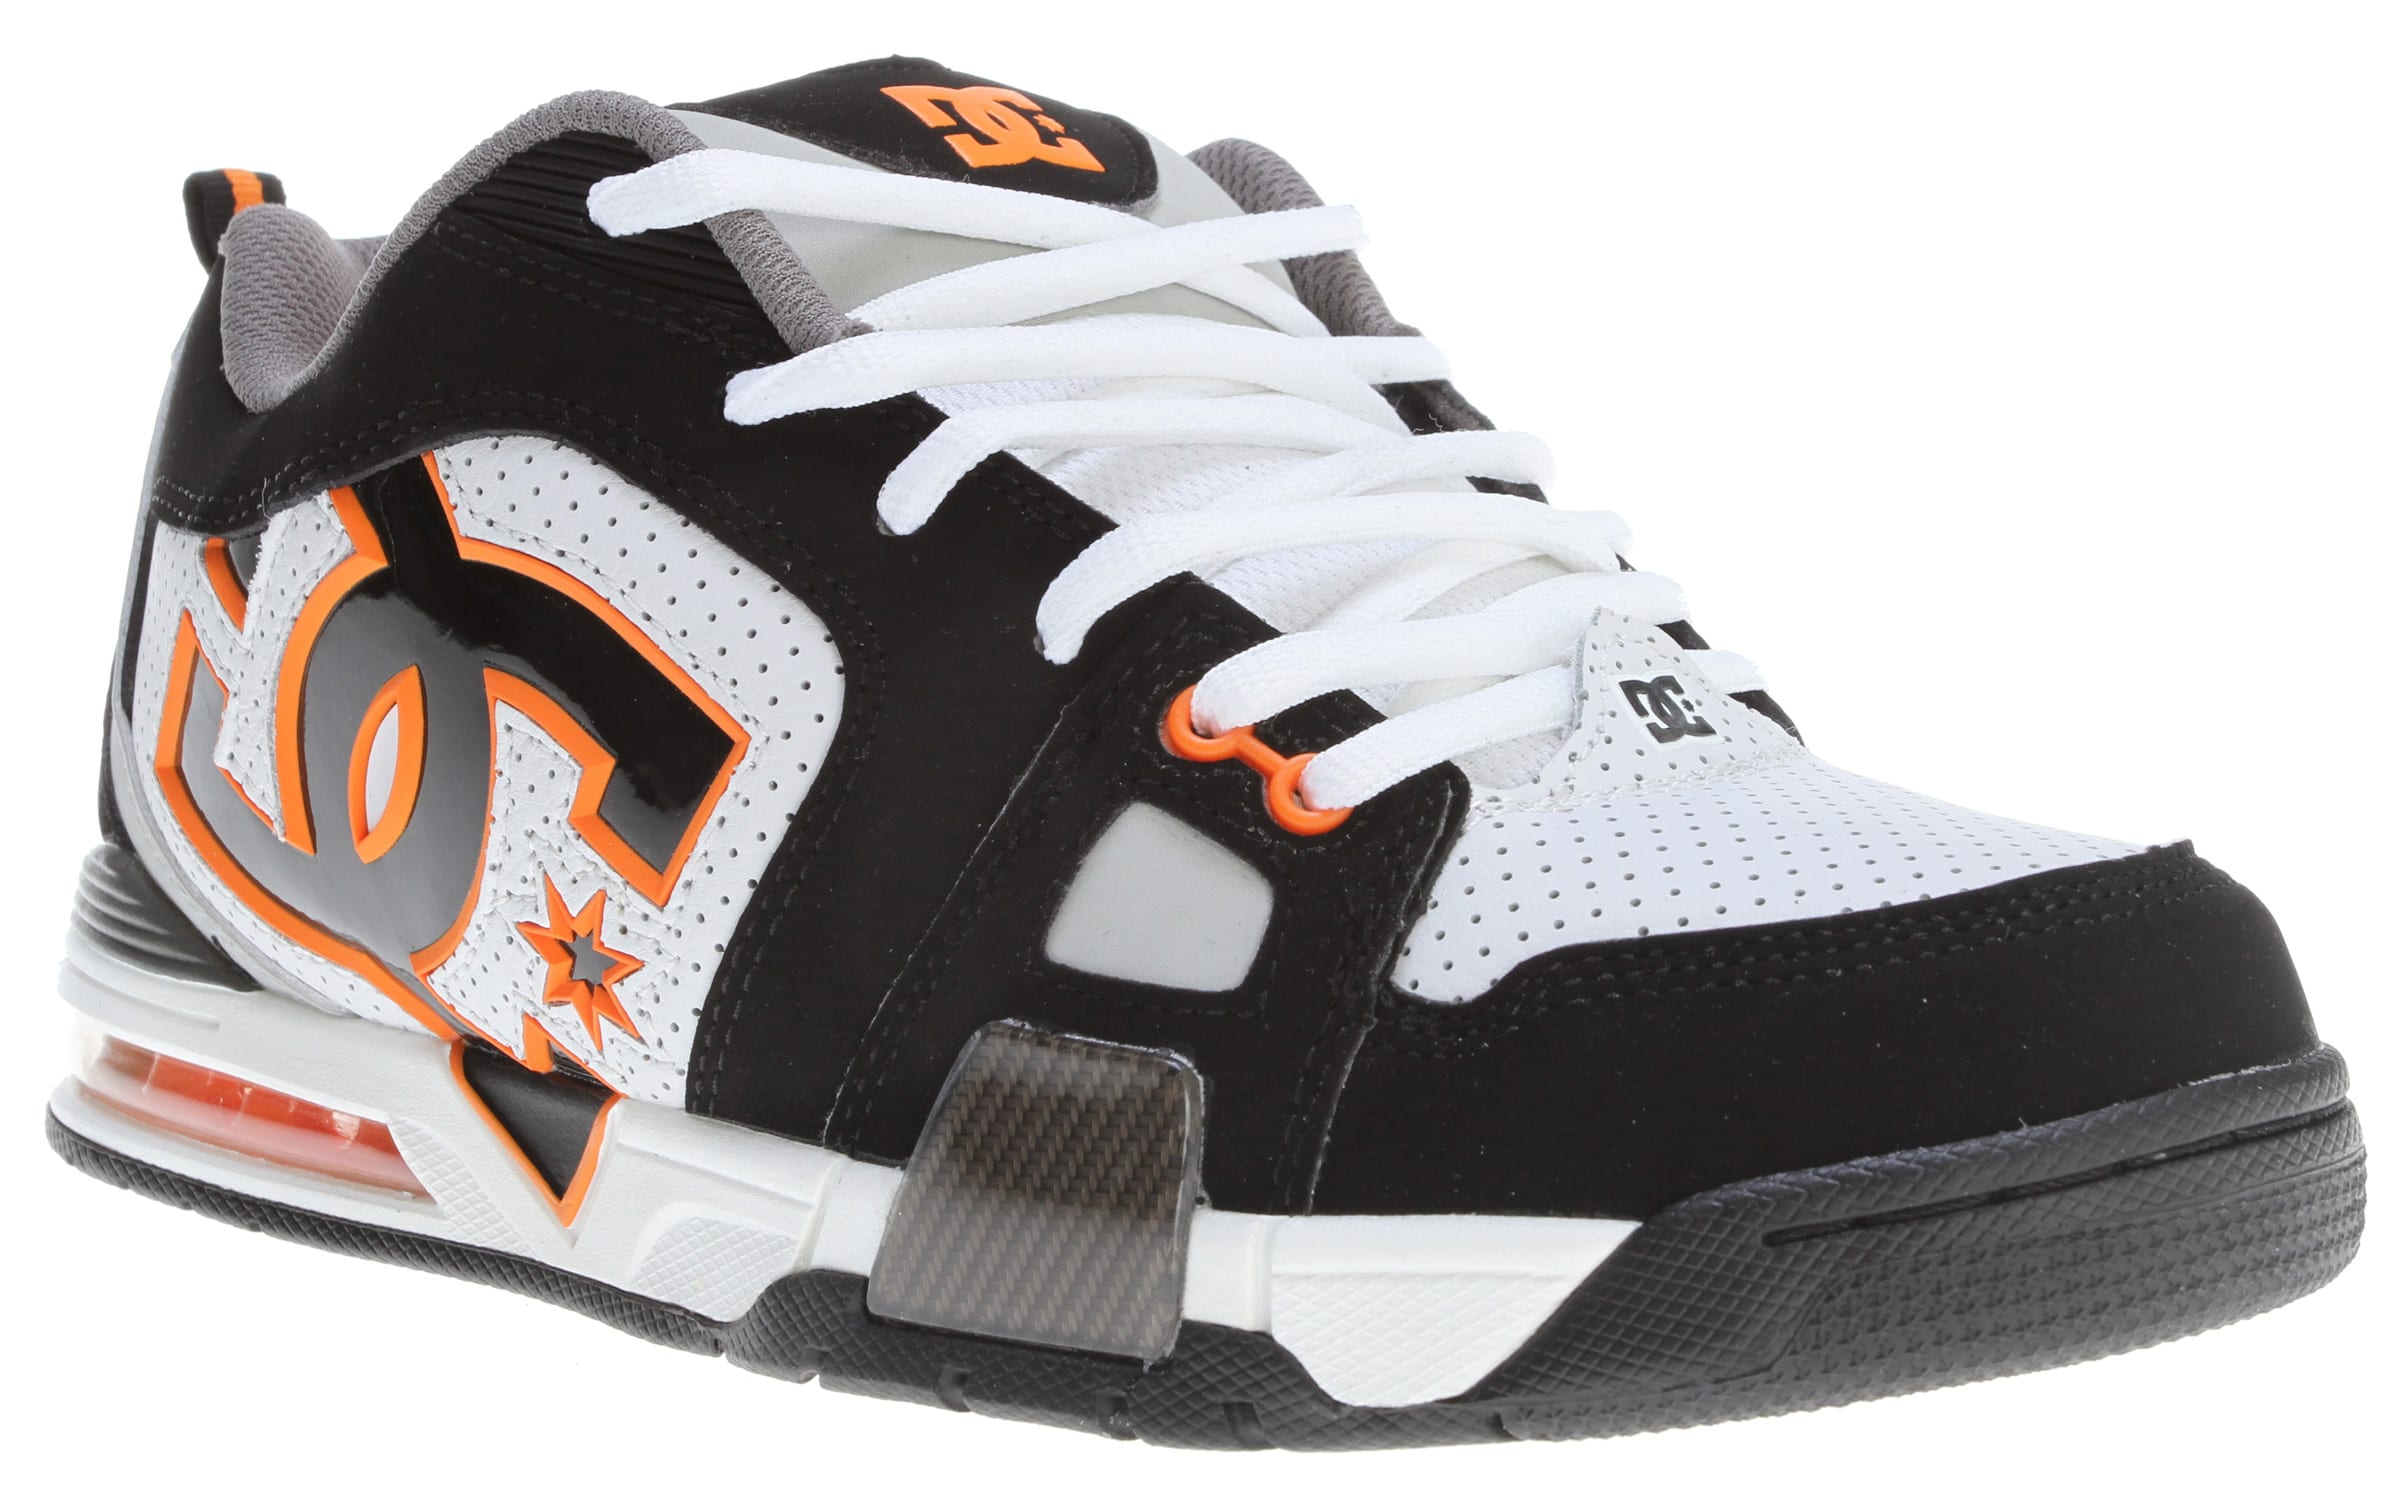 outlet store 0b907 50d99 DC Frenzy Skate Shoes - thumbnail 2